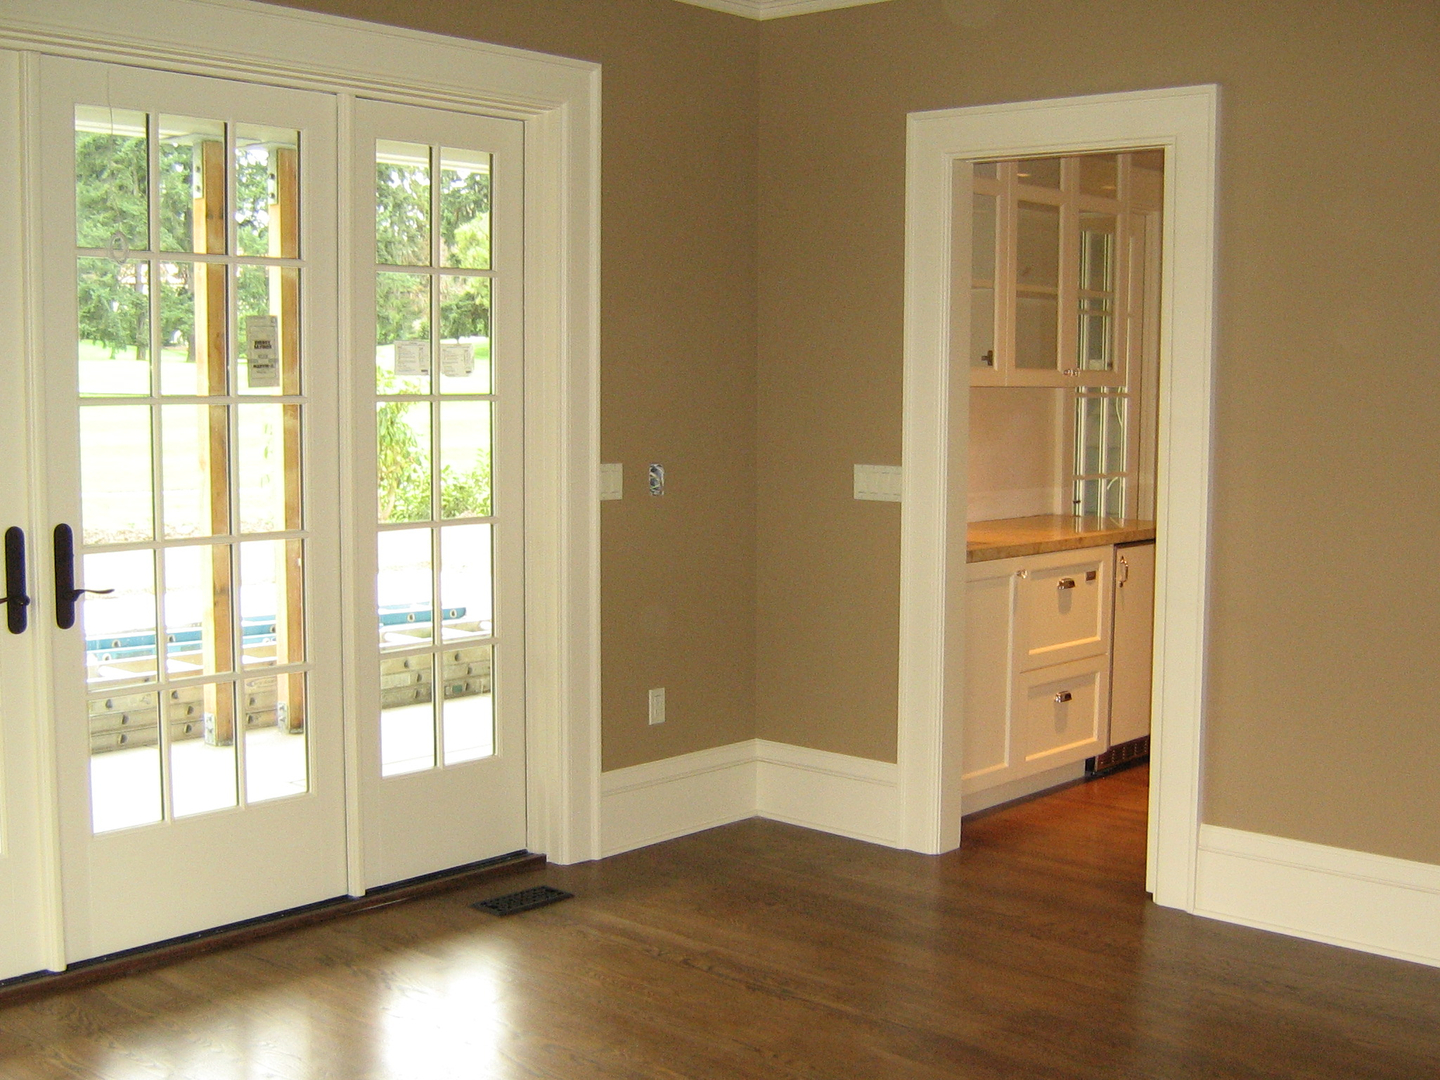 price to paint a house interior.  Interior Painting Lawton OK